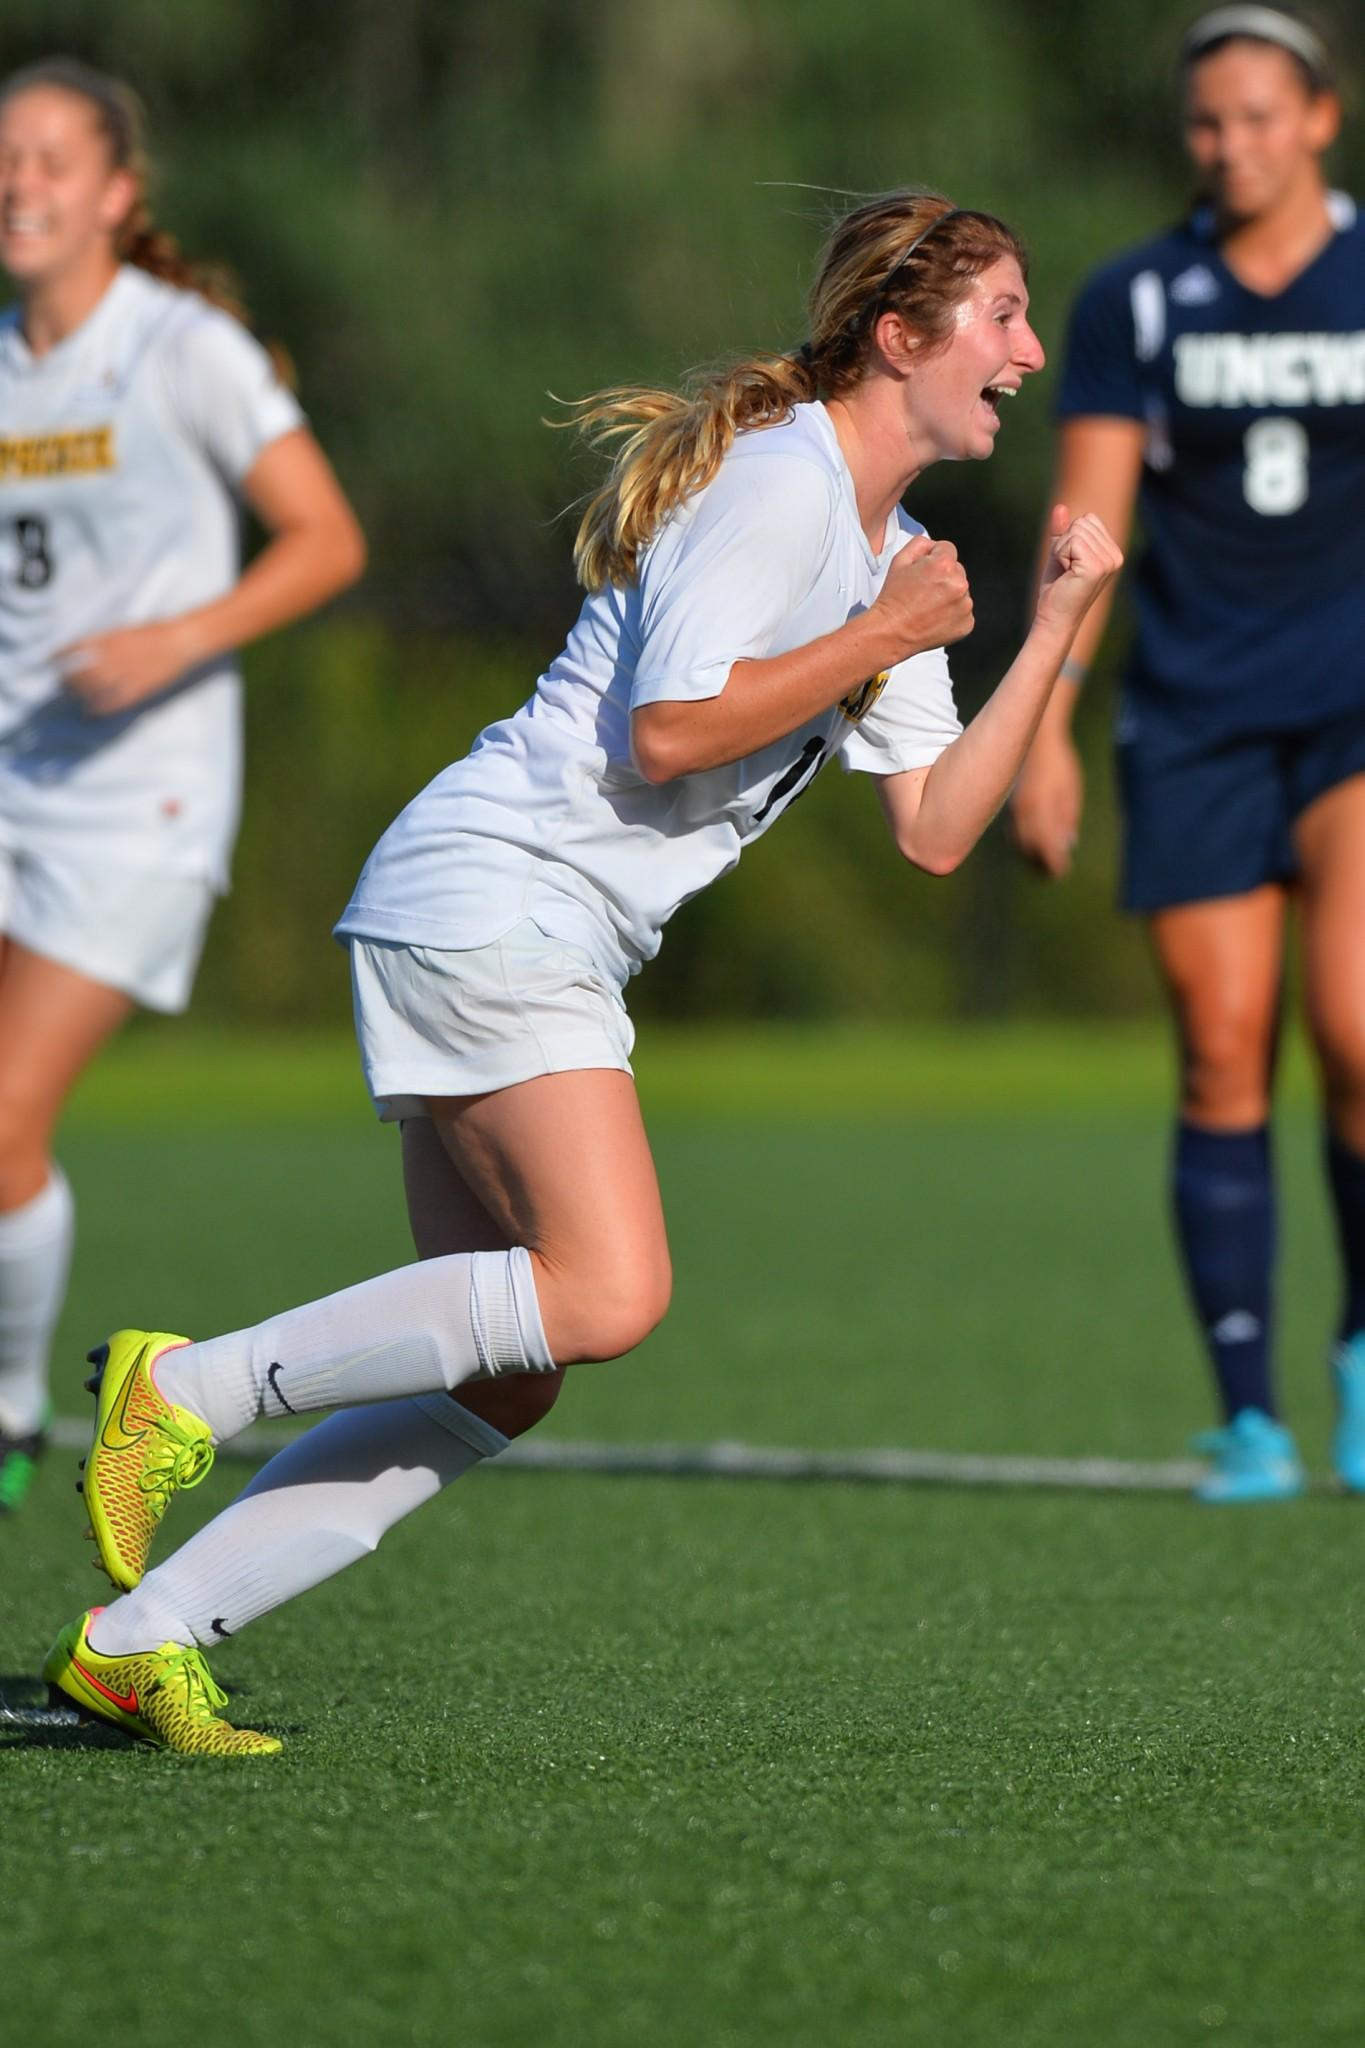 Merlin+Beckwith+celebrates+game+winning+penalty+kick.+Appalachian+State+came+back+from+a+two-goal+deficit+to+win+3-2.+Photo+Courtesy+%7C+Tim+Cowie%2FTim+Cowie+Photography